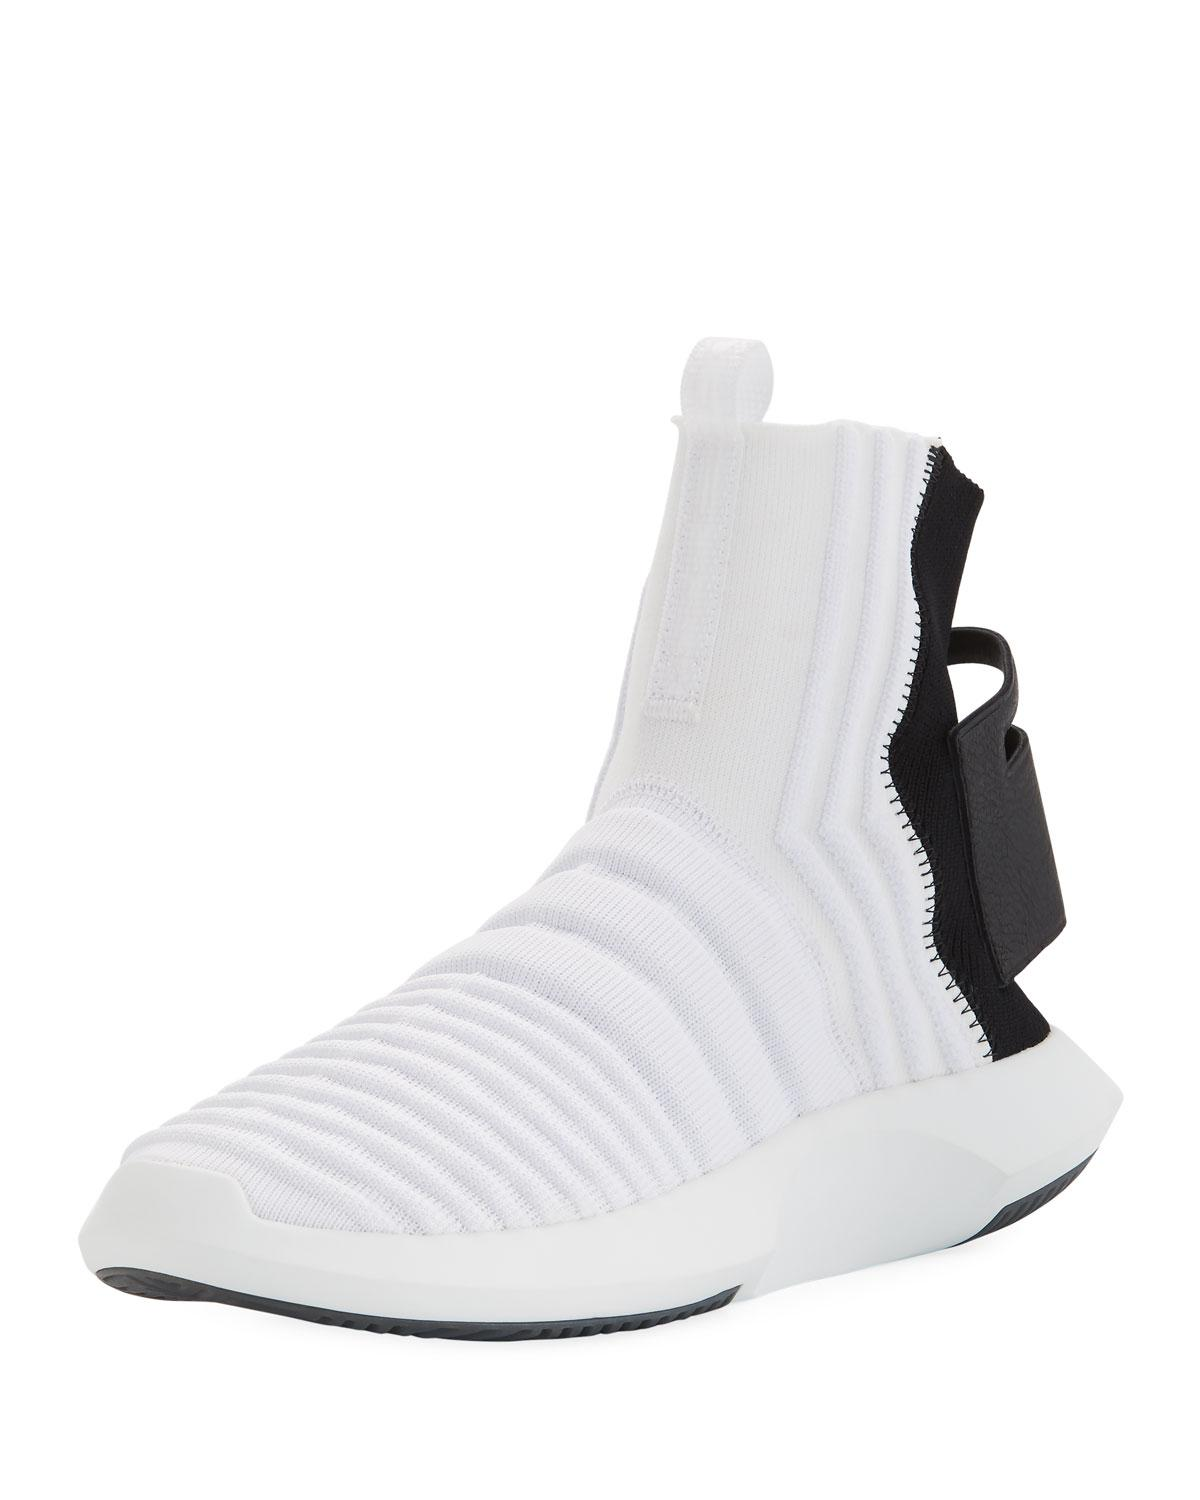 0805efb4a054 Lyst - adidas Men s Crazy 1 Adv High-top Sock Sneakers in White for Men